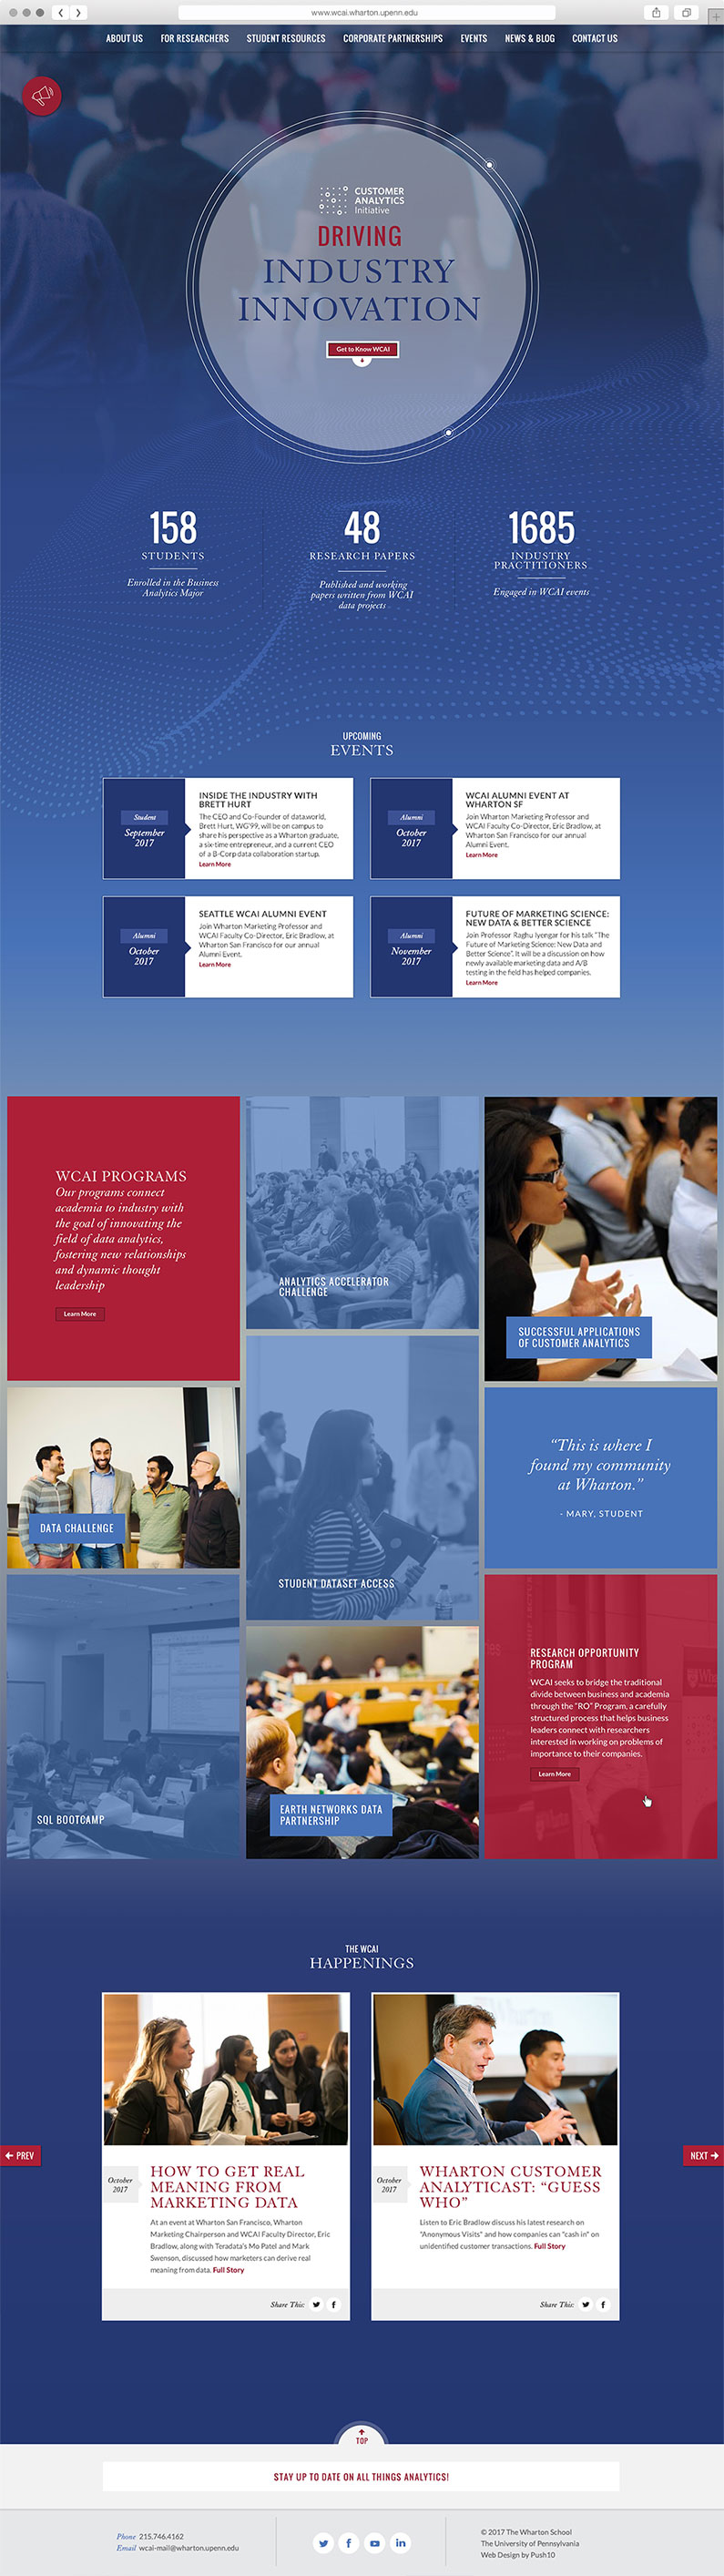 Responsive website user interface design for Wharton, UPenn